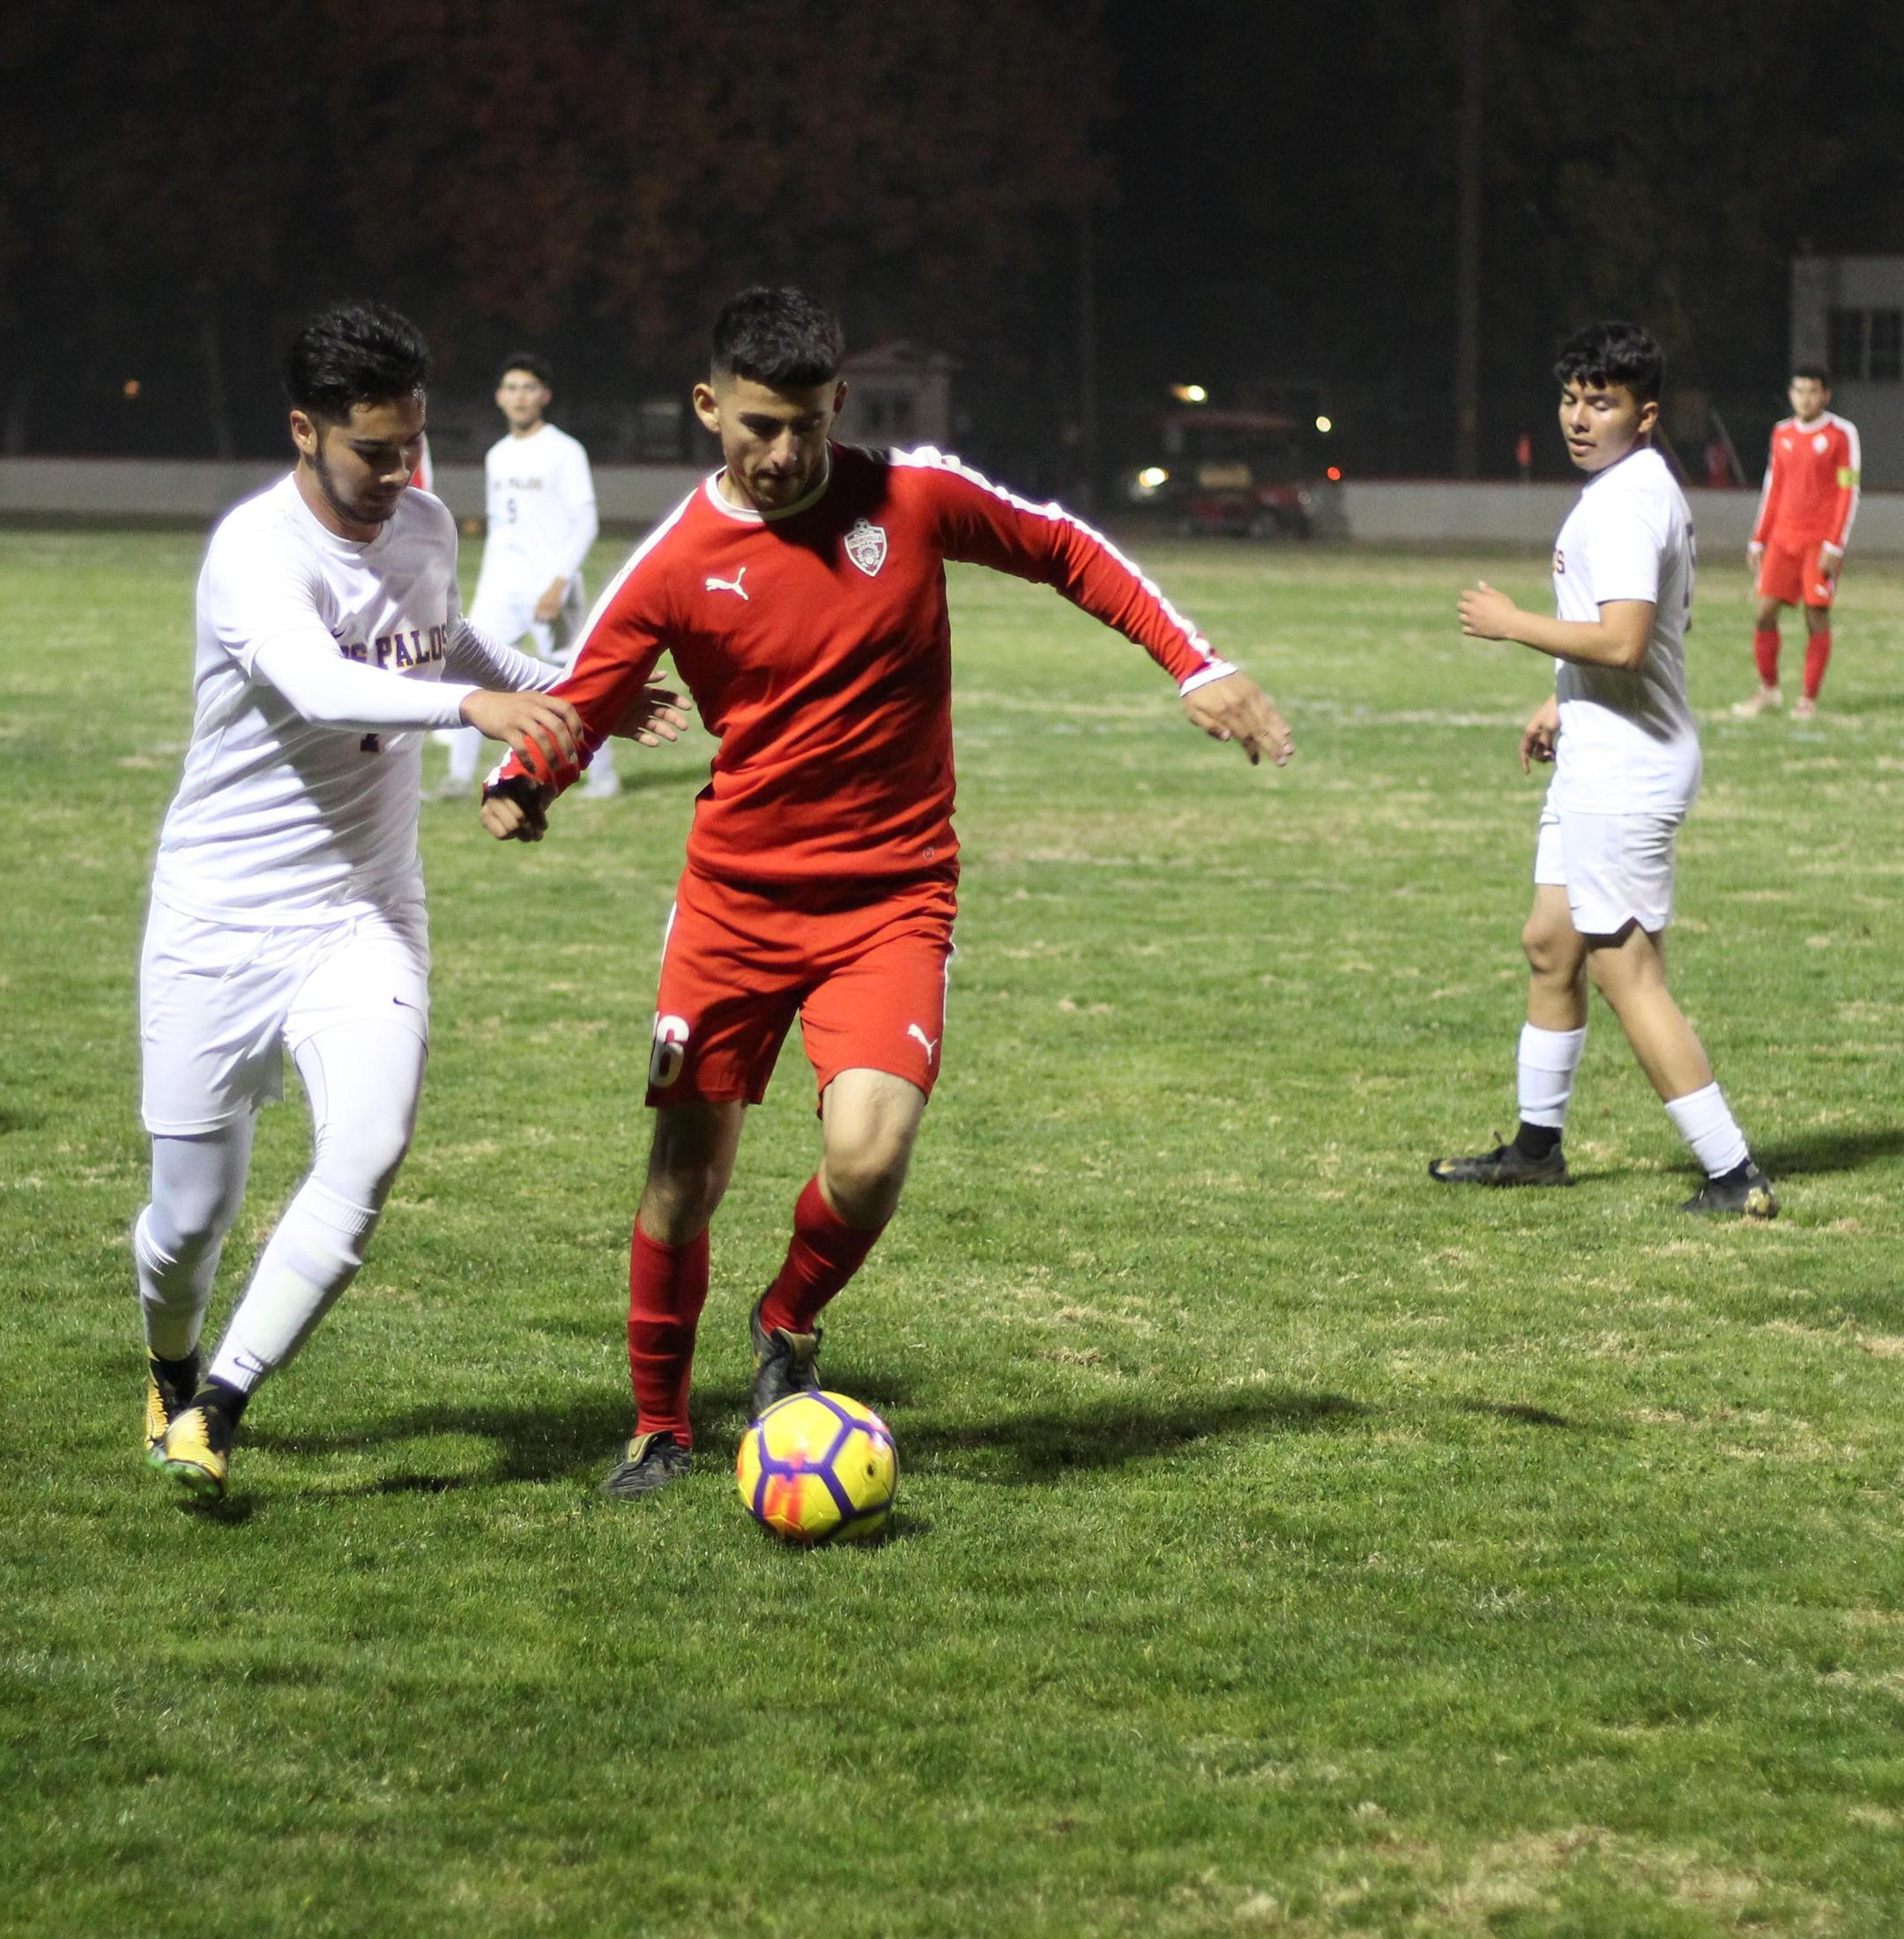 Christian Fernandez with the ball